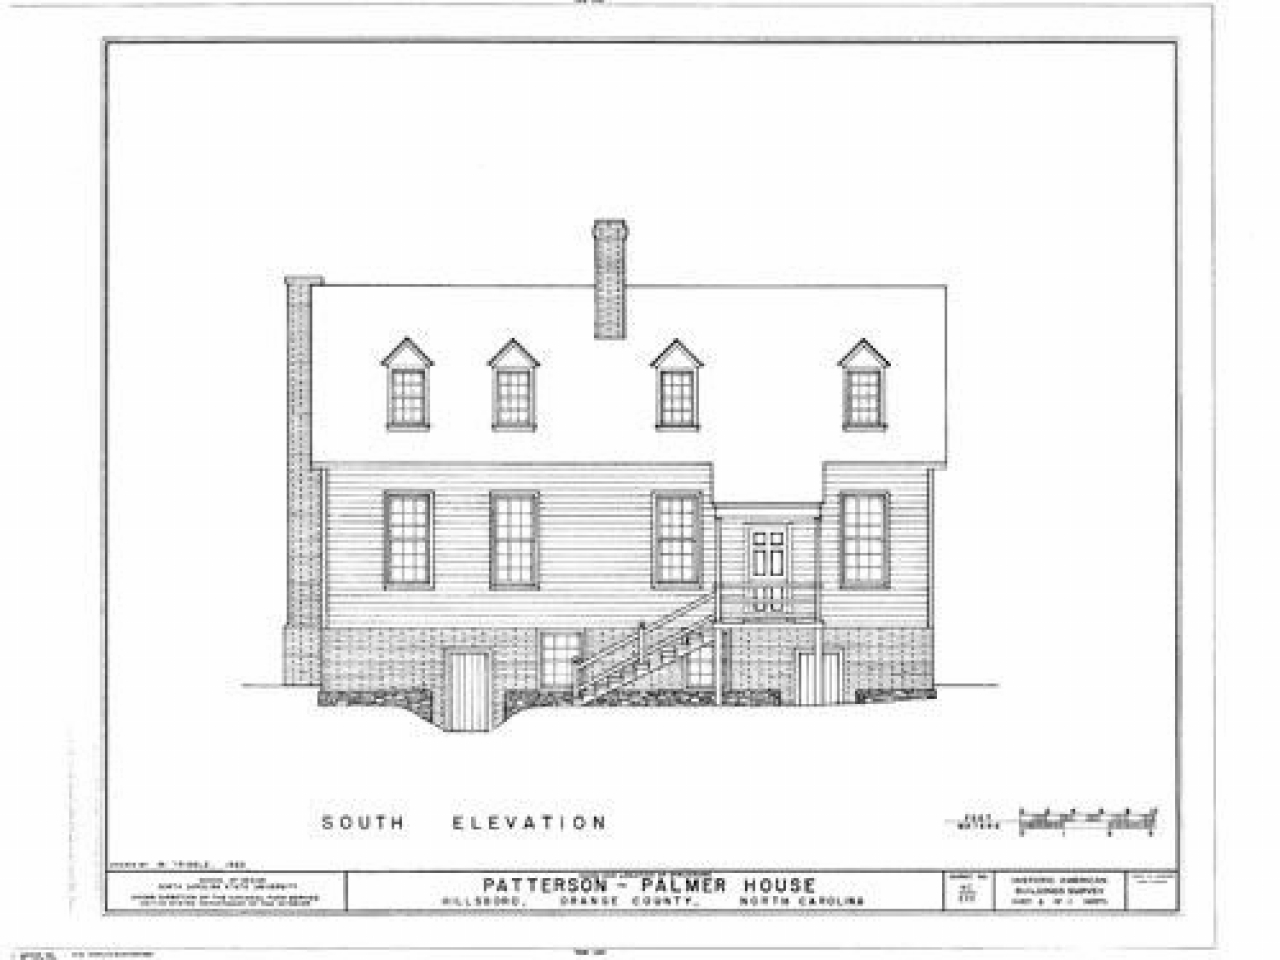 Country club of north carolina north carolina country for Carolina house plans